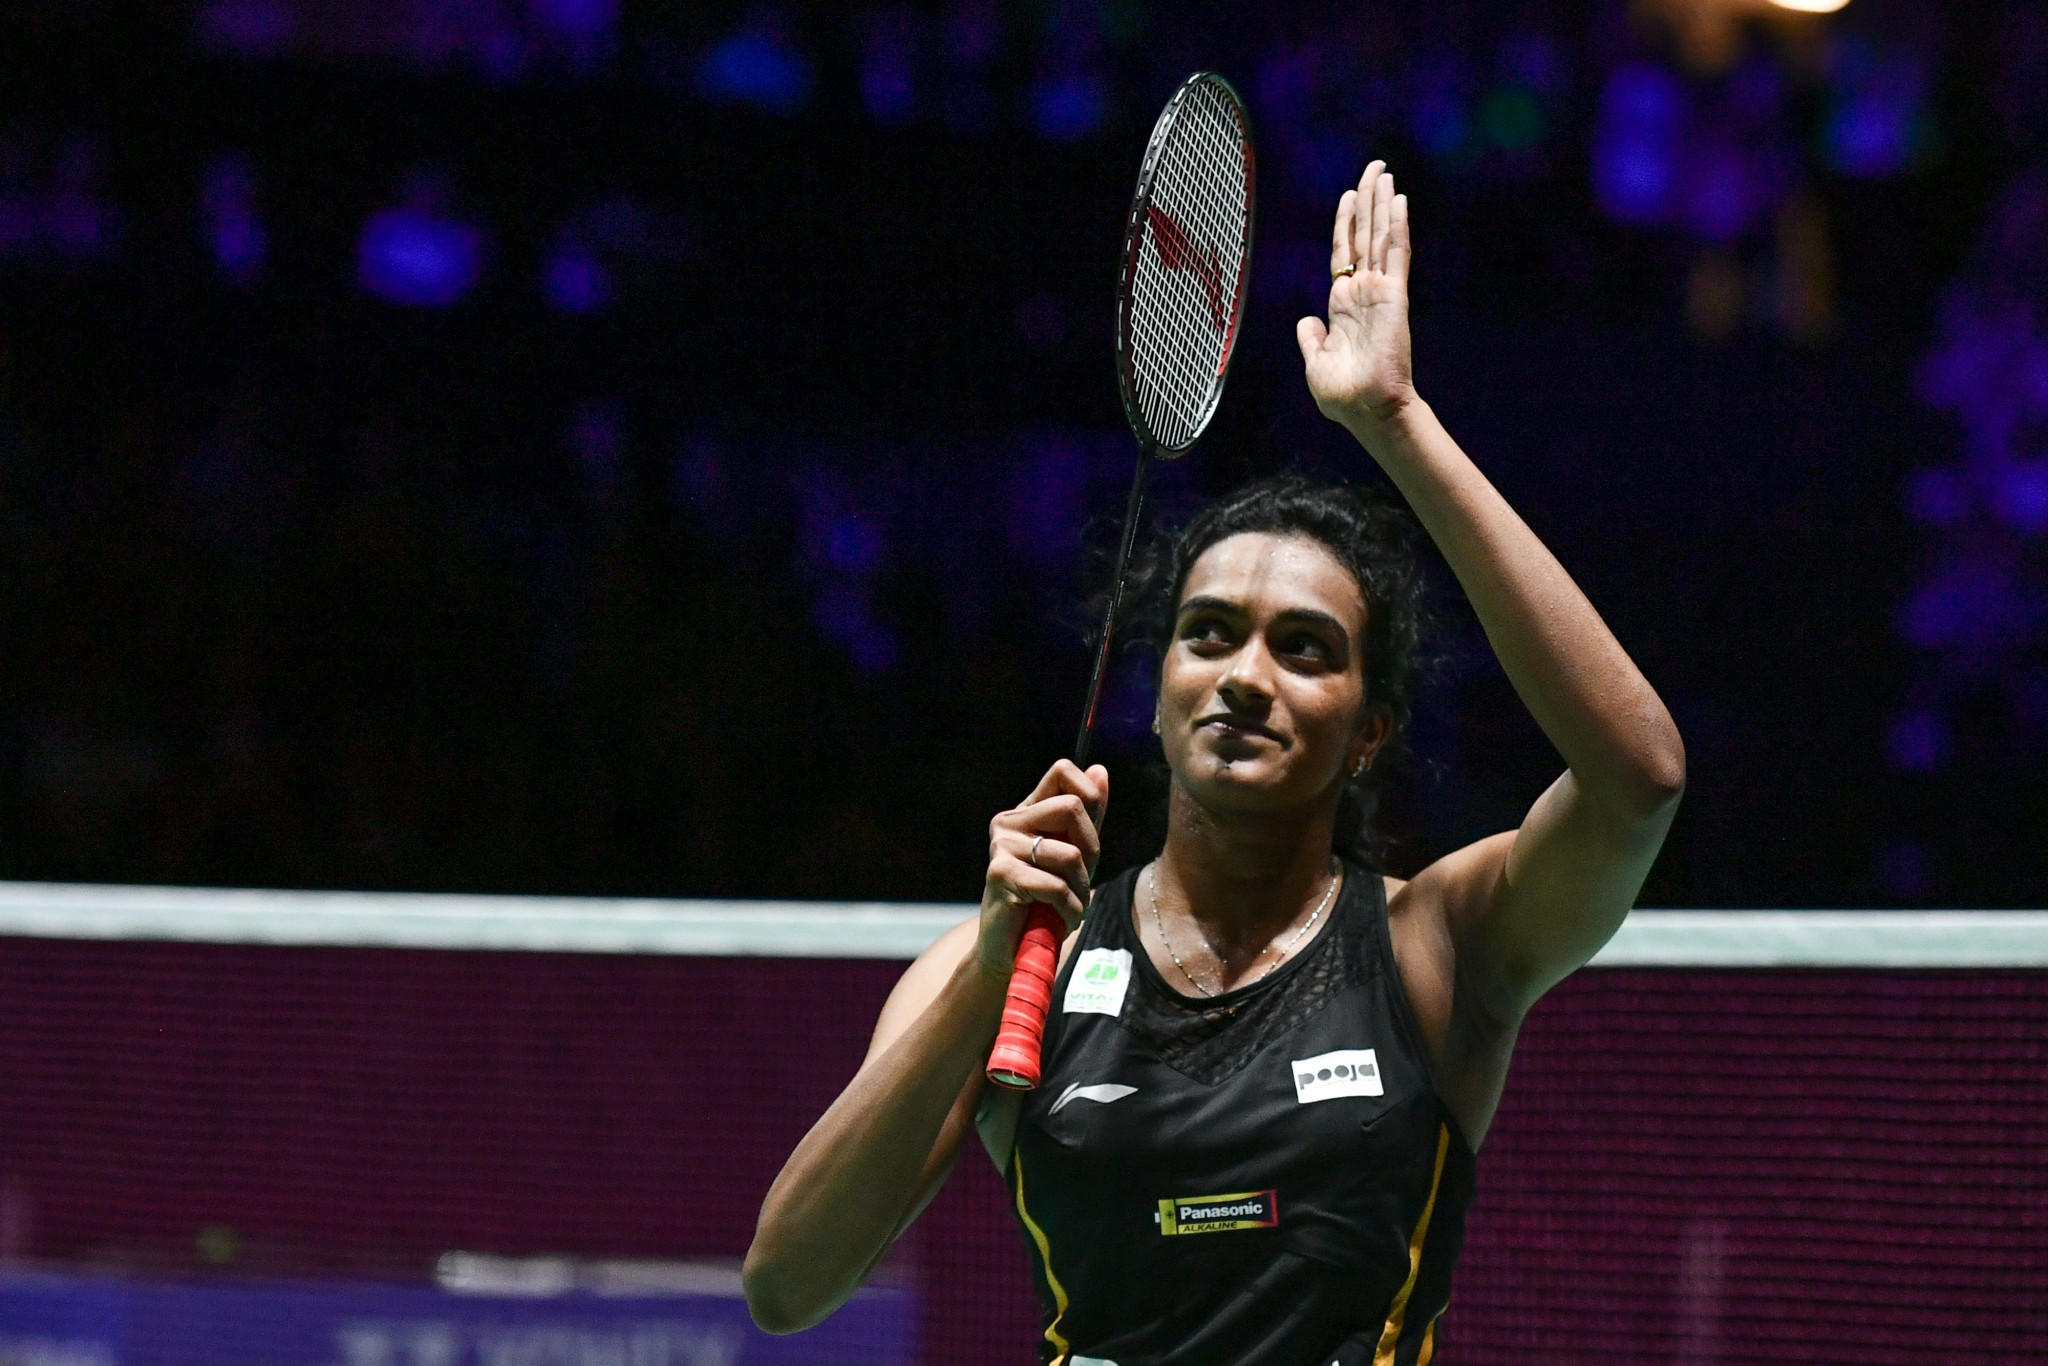 India's P.V Sindhu will hope to retain her women's singles title ©Getty Images